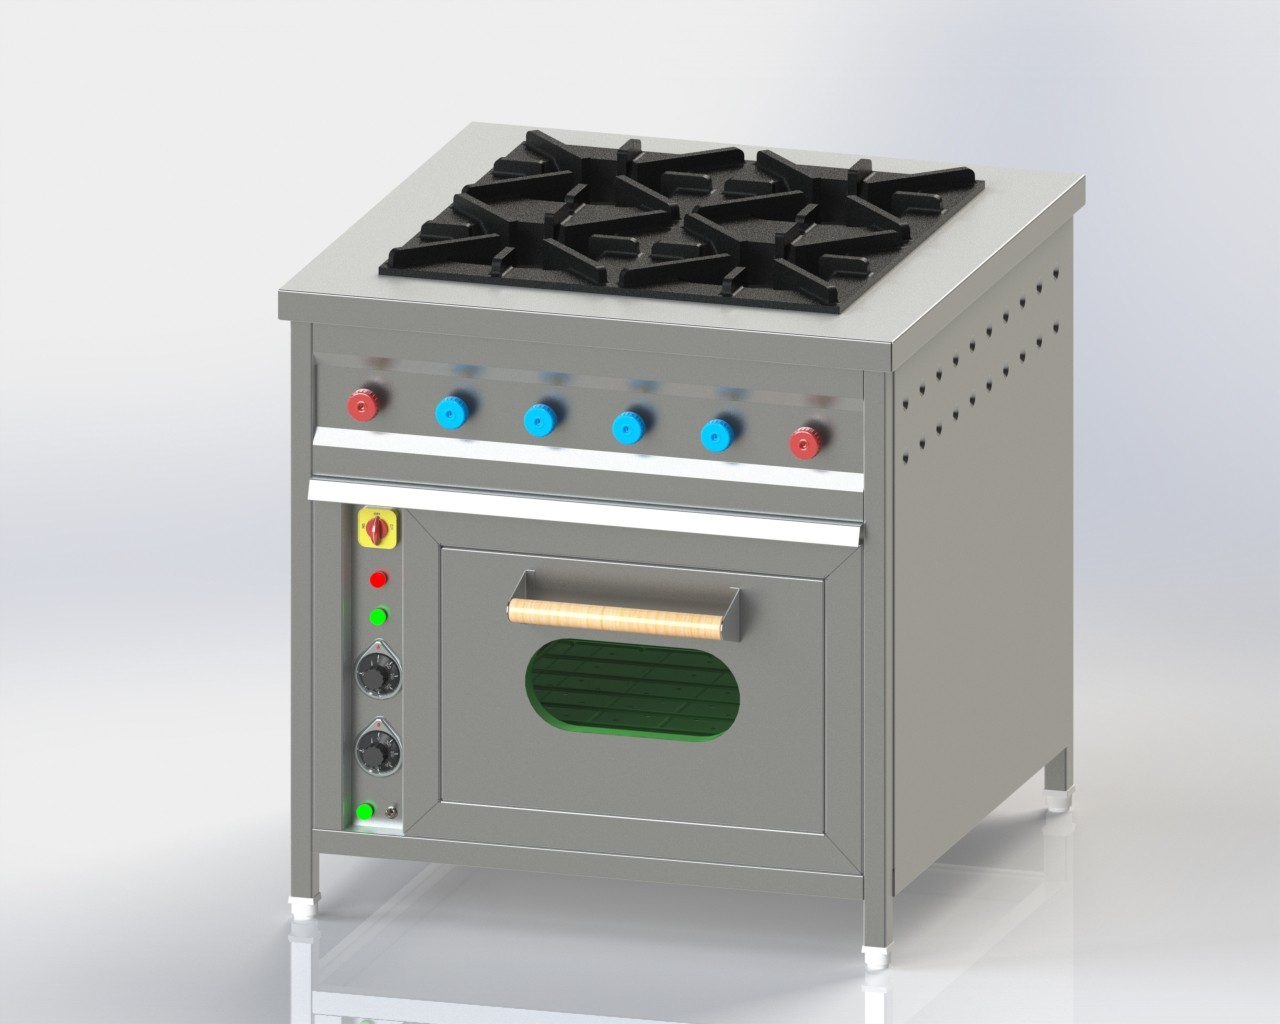 Four Burner with Below oven for cooking in commercial kitchen